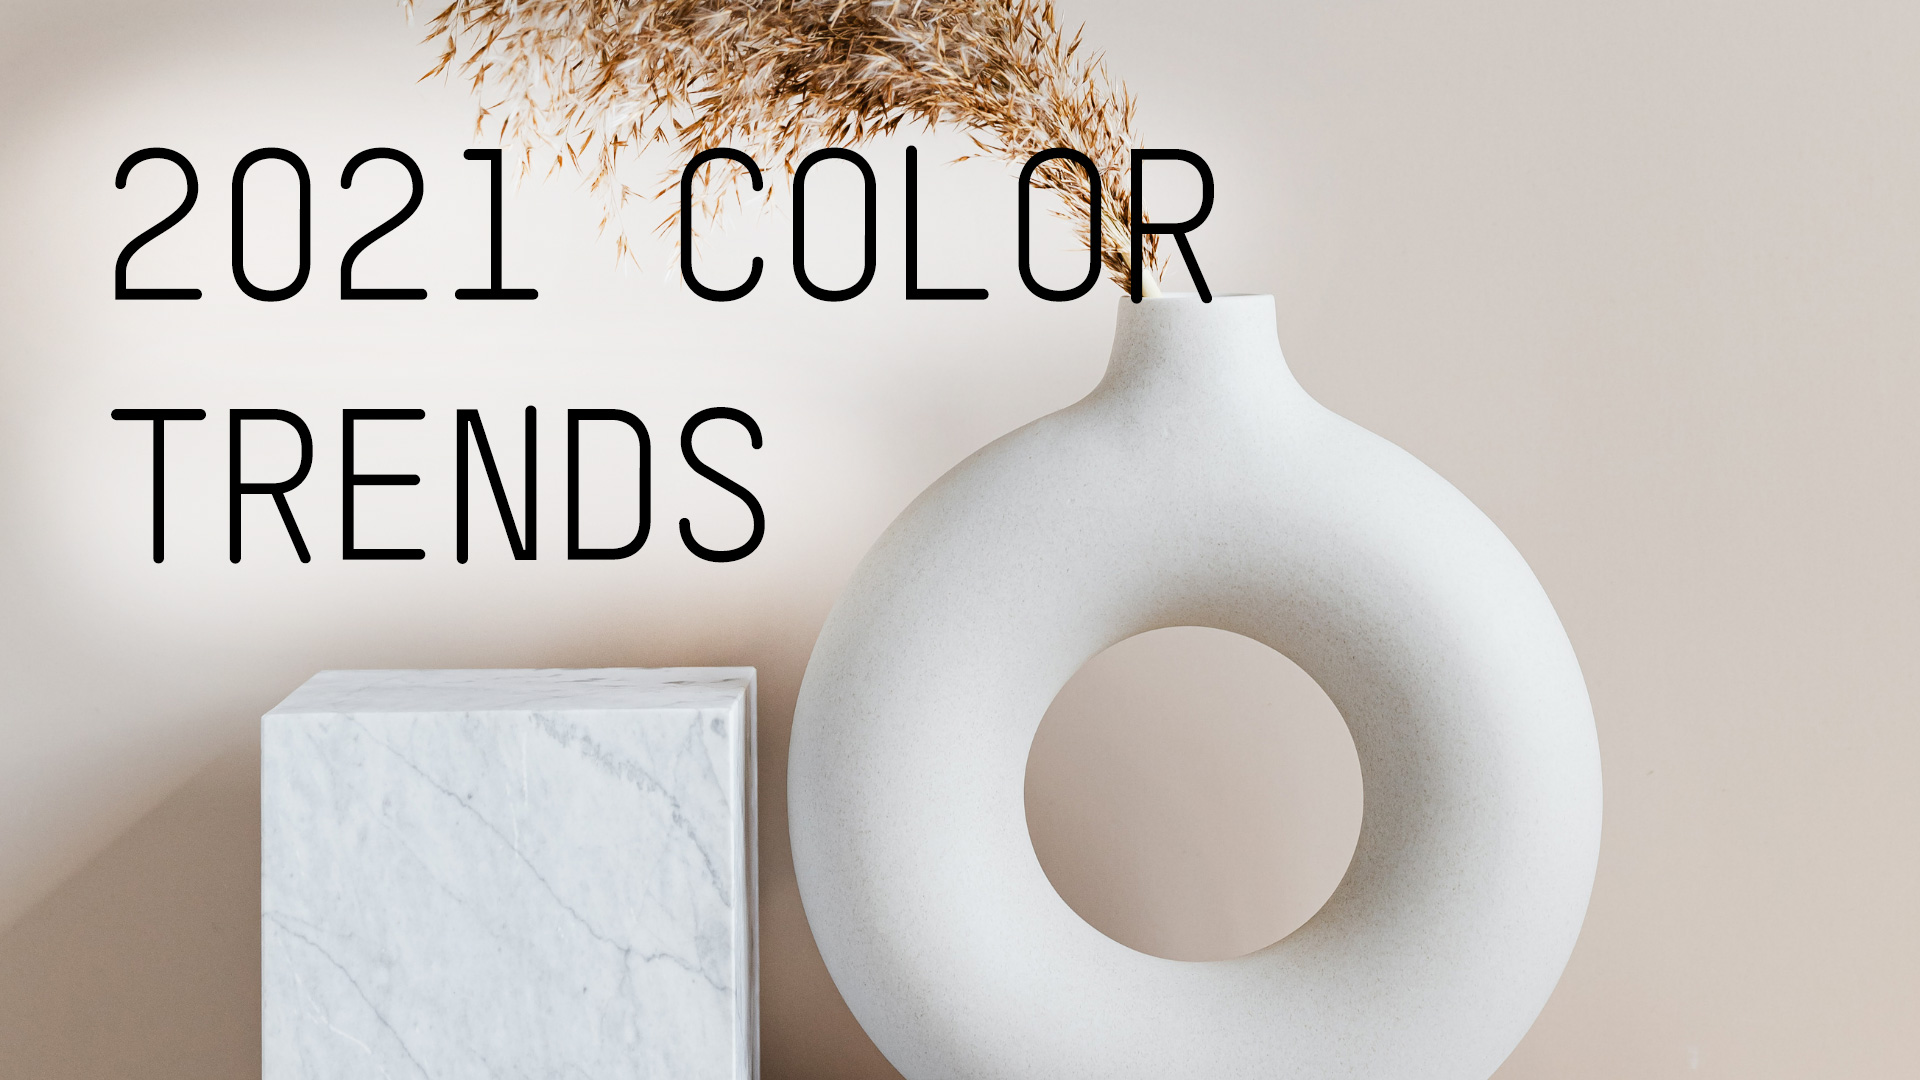 2021 color trends fro your home